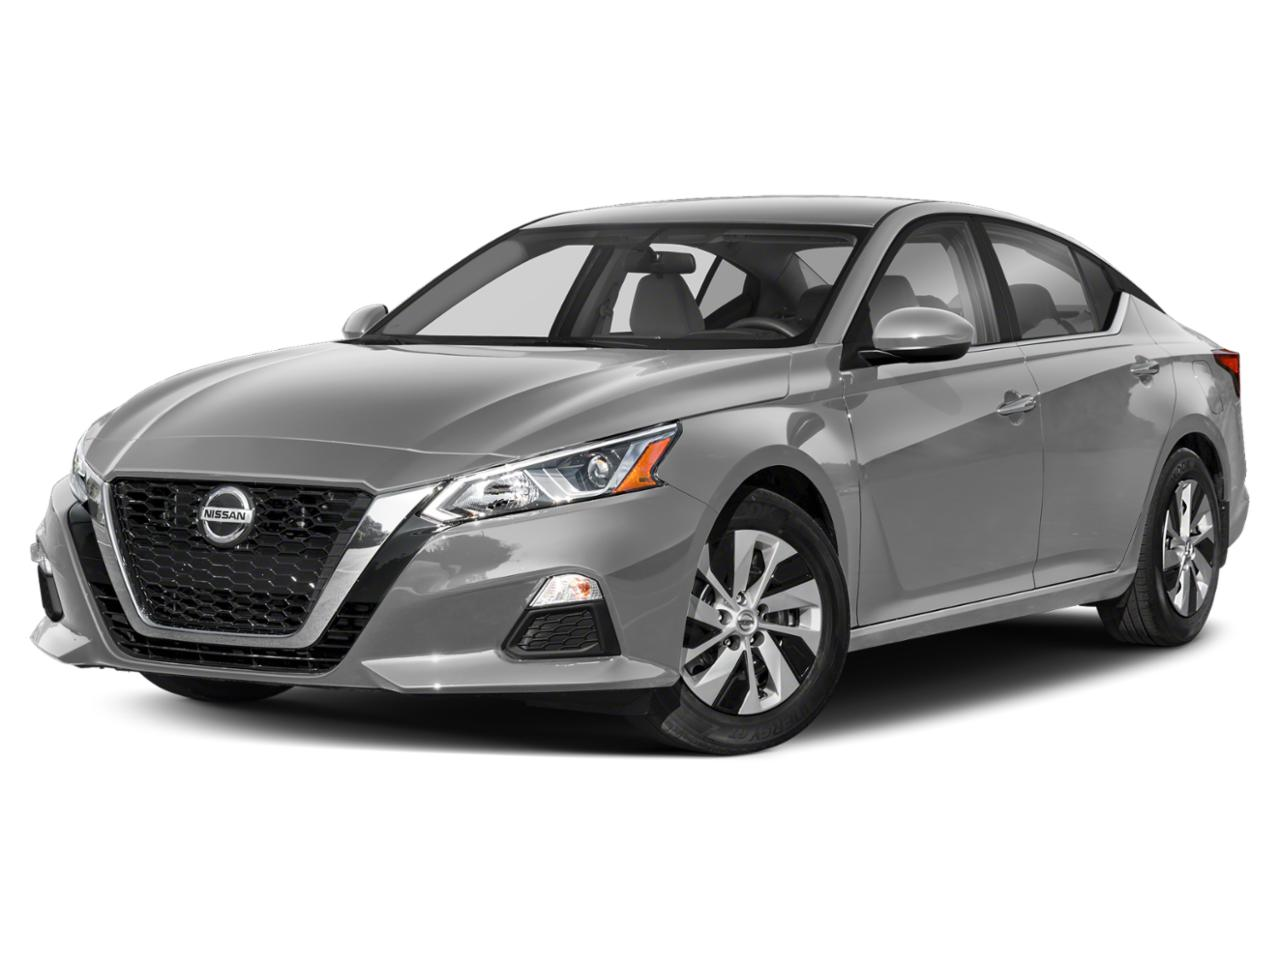 2019 Nissan Altima Vehicle Photo in Annapolis, MD 21401